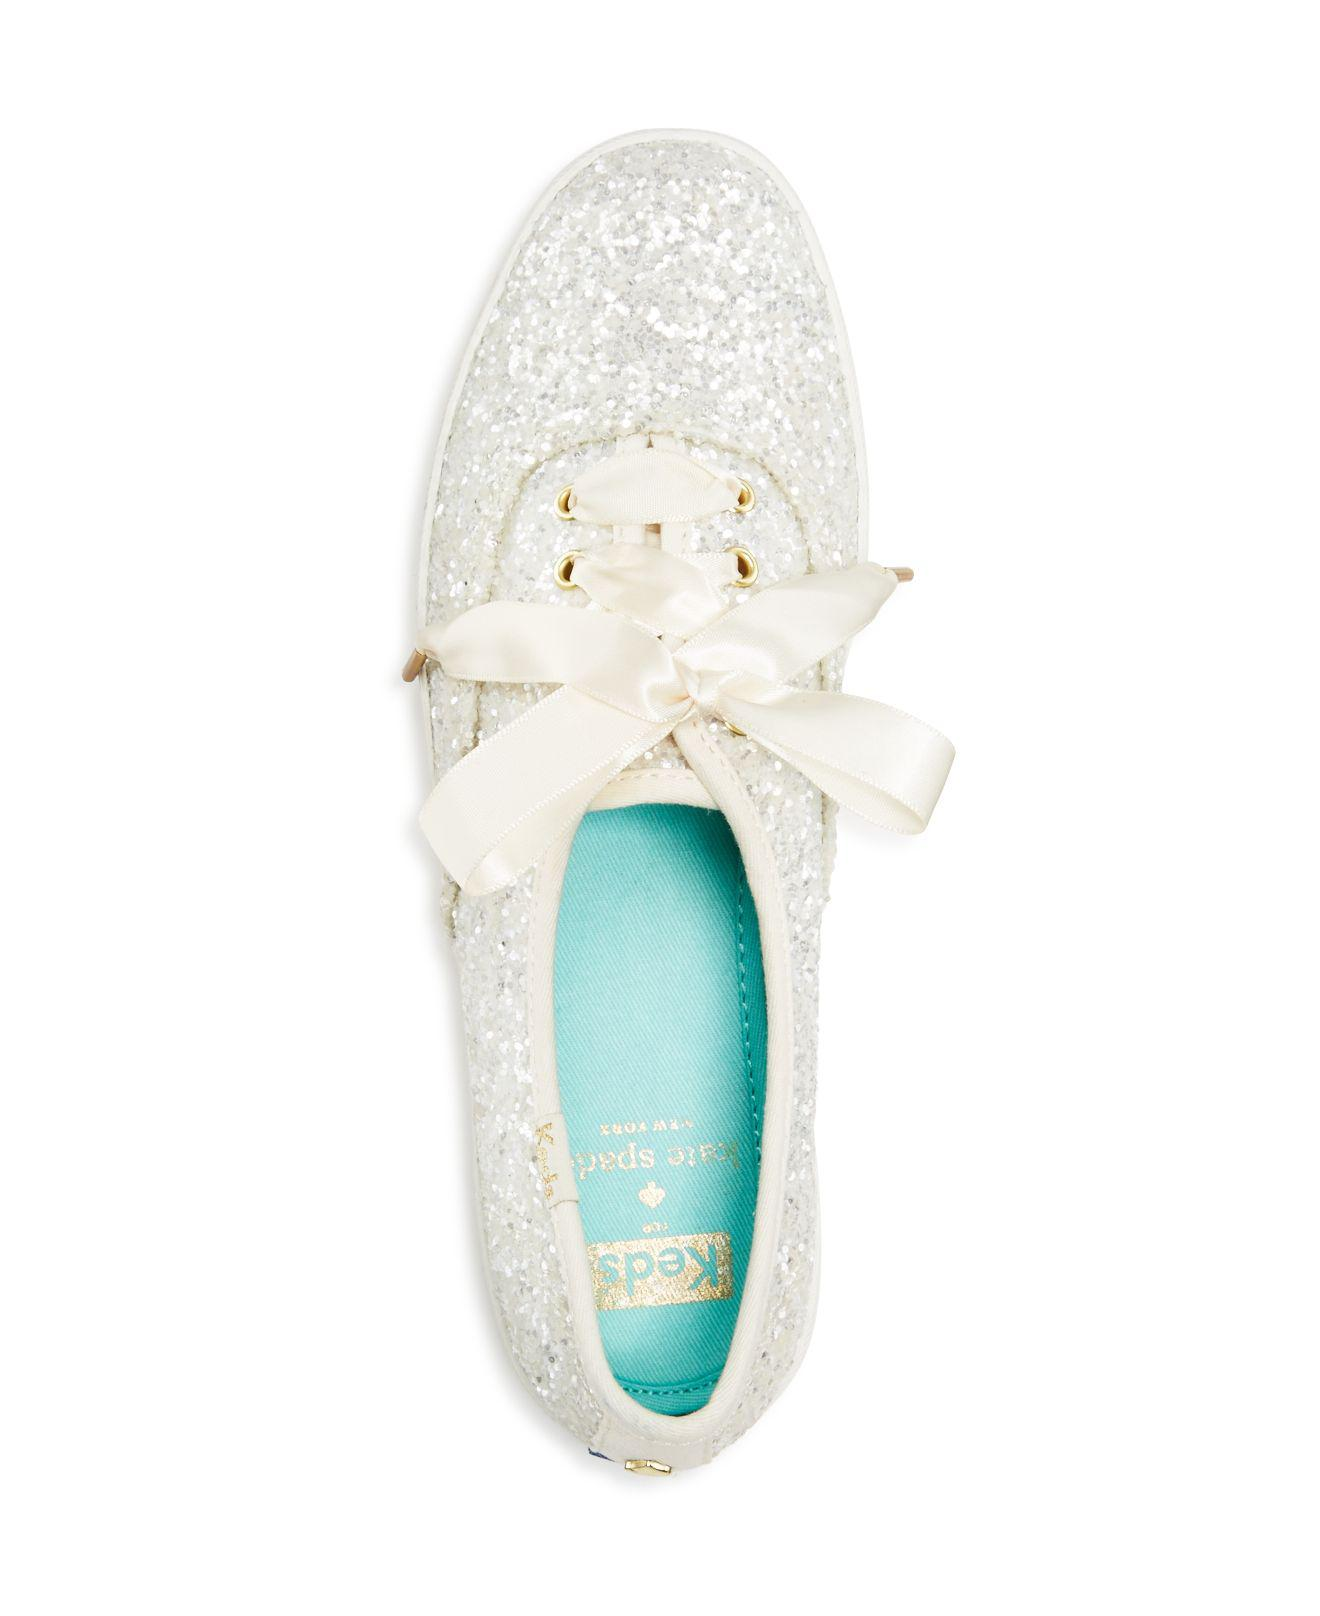 6db9365ffb Lyst - Kate Spade X Keds Glitter Lace Up Low Top Sneakers in White